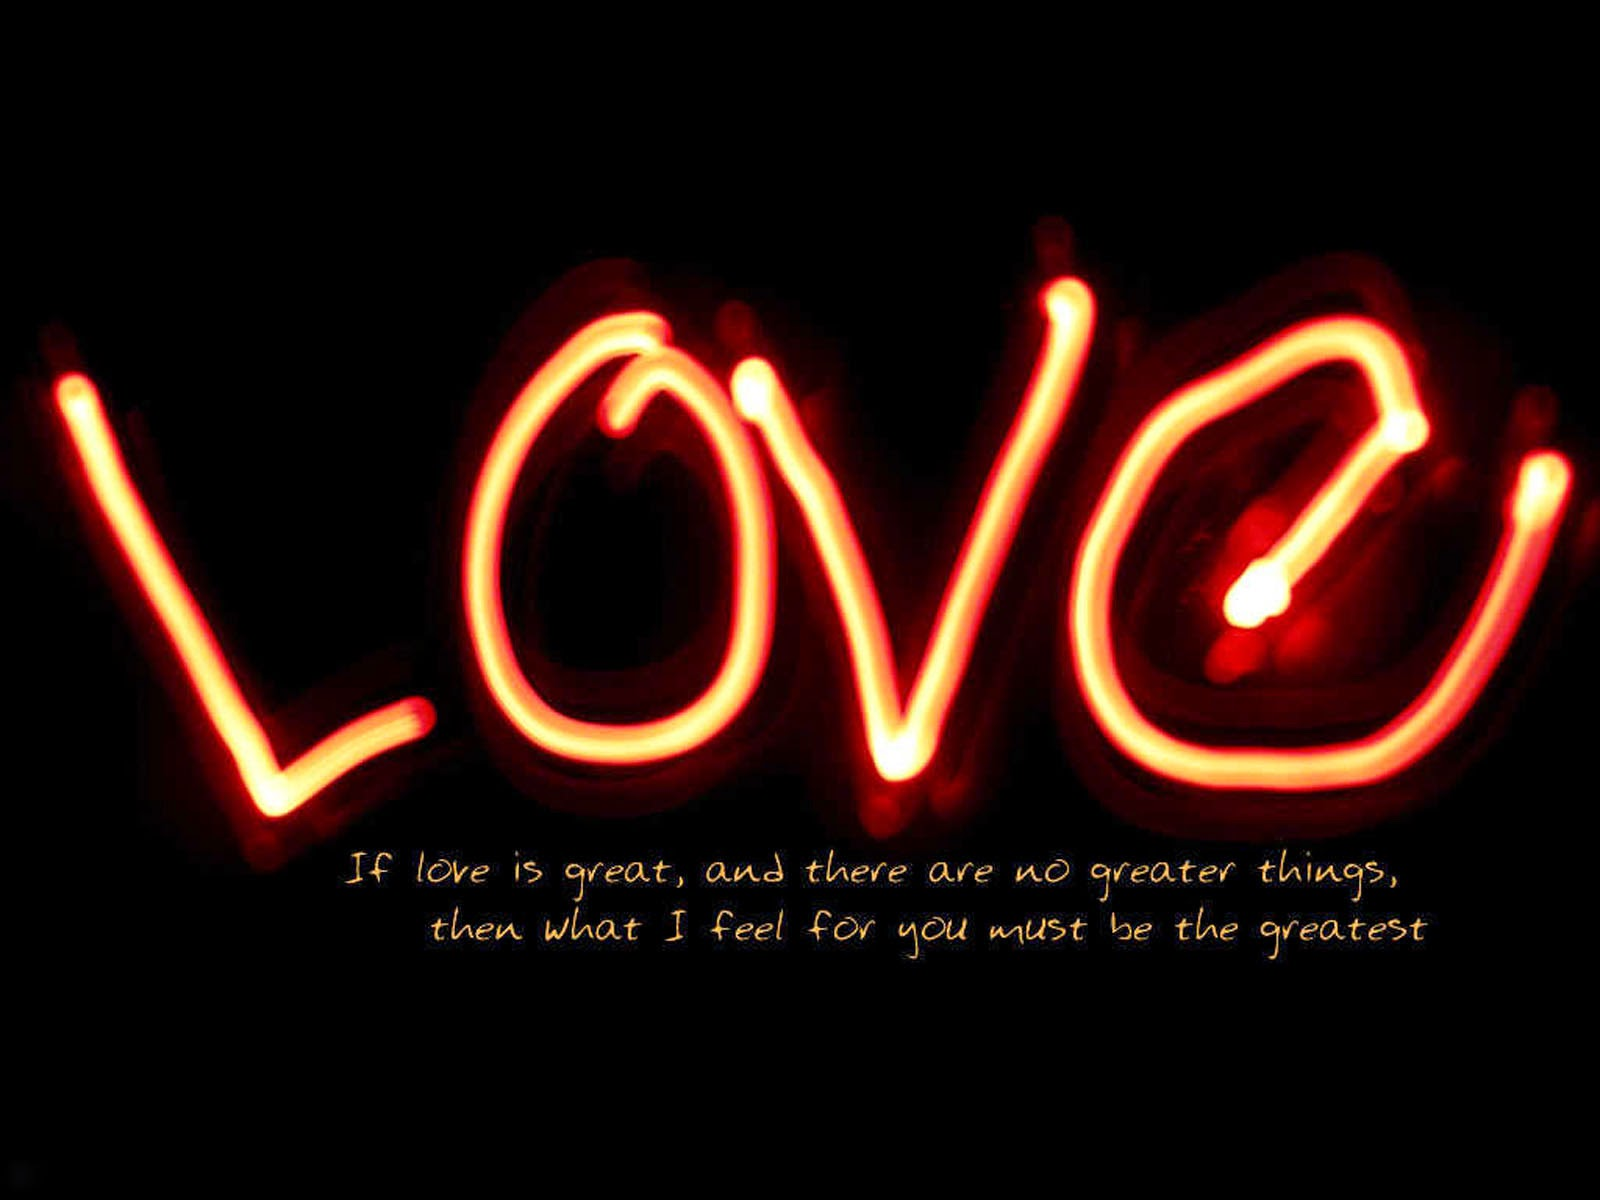 Love-Quote-Saying-Wallpaper HD 4